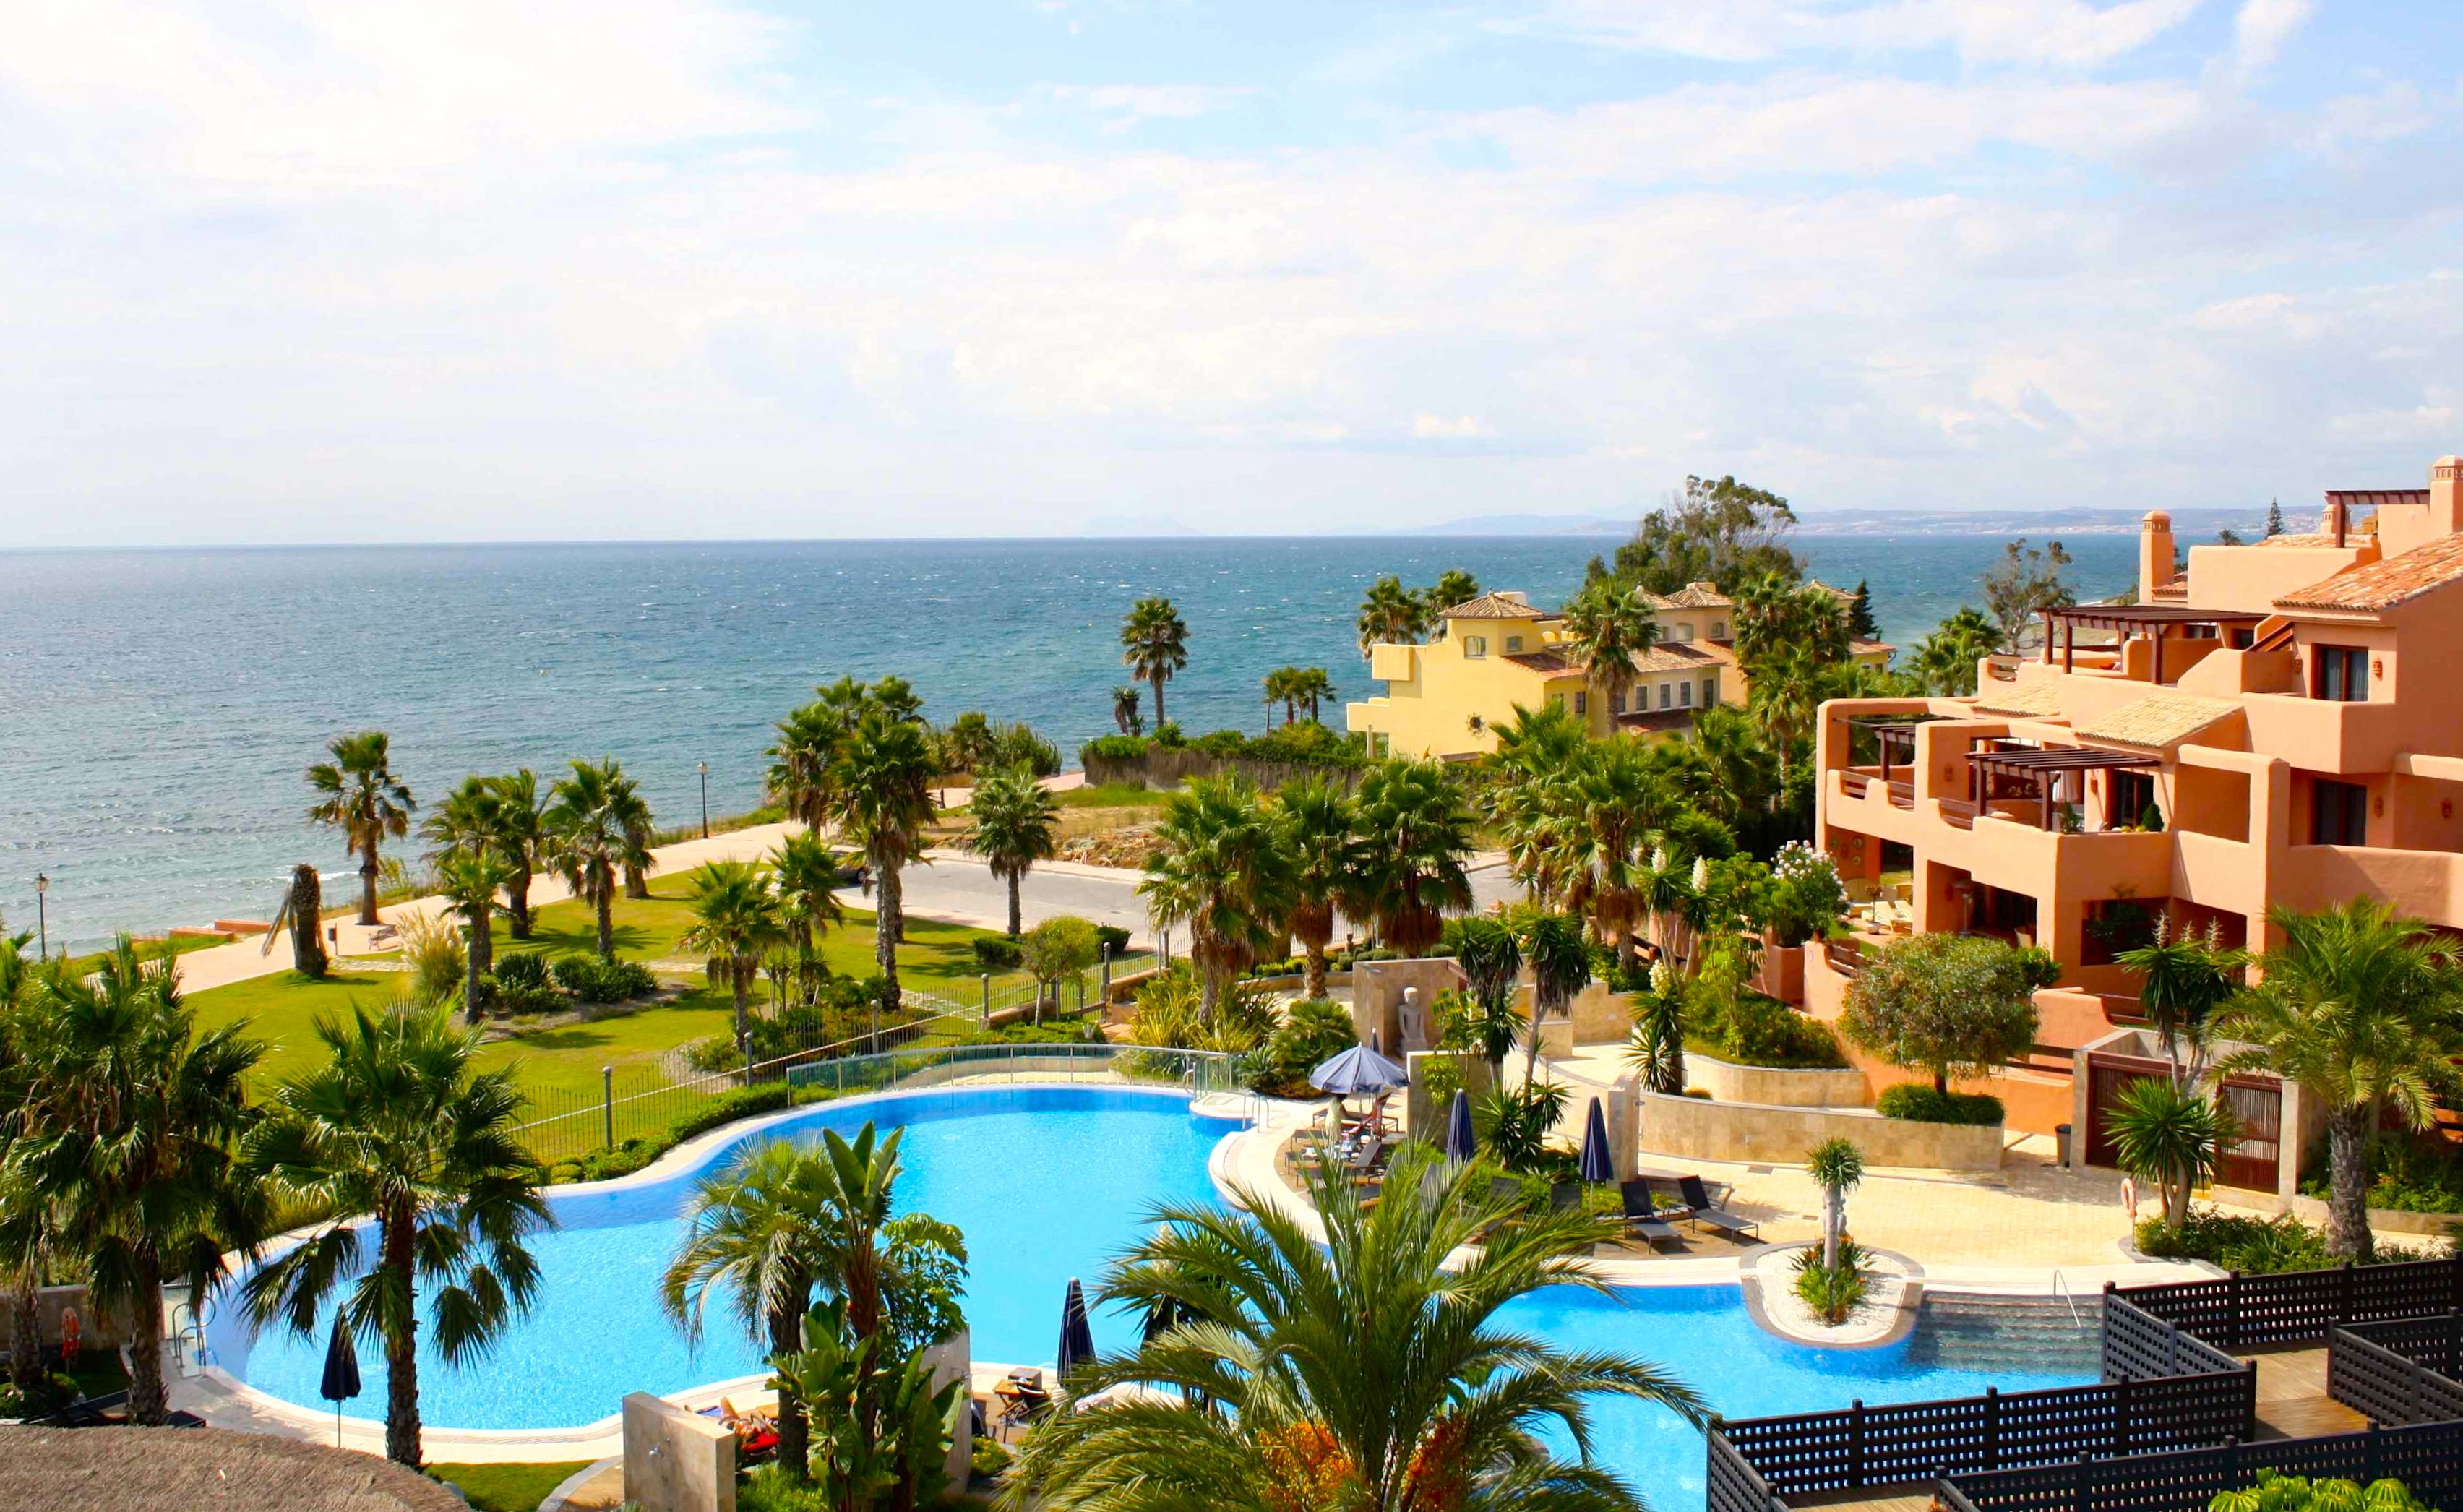 Luxury front line beach apartment for sale in mar azul - Domotica marbella ...